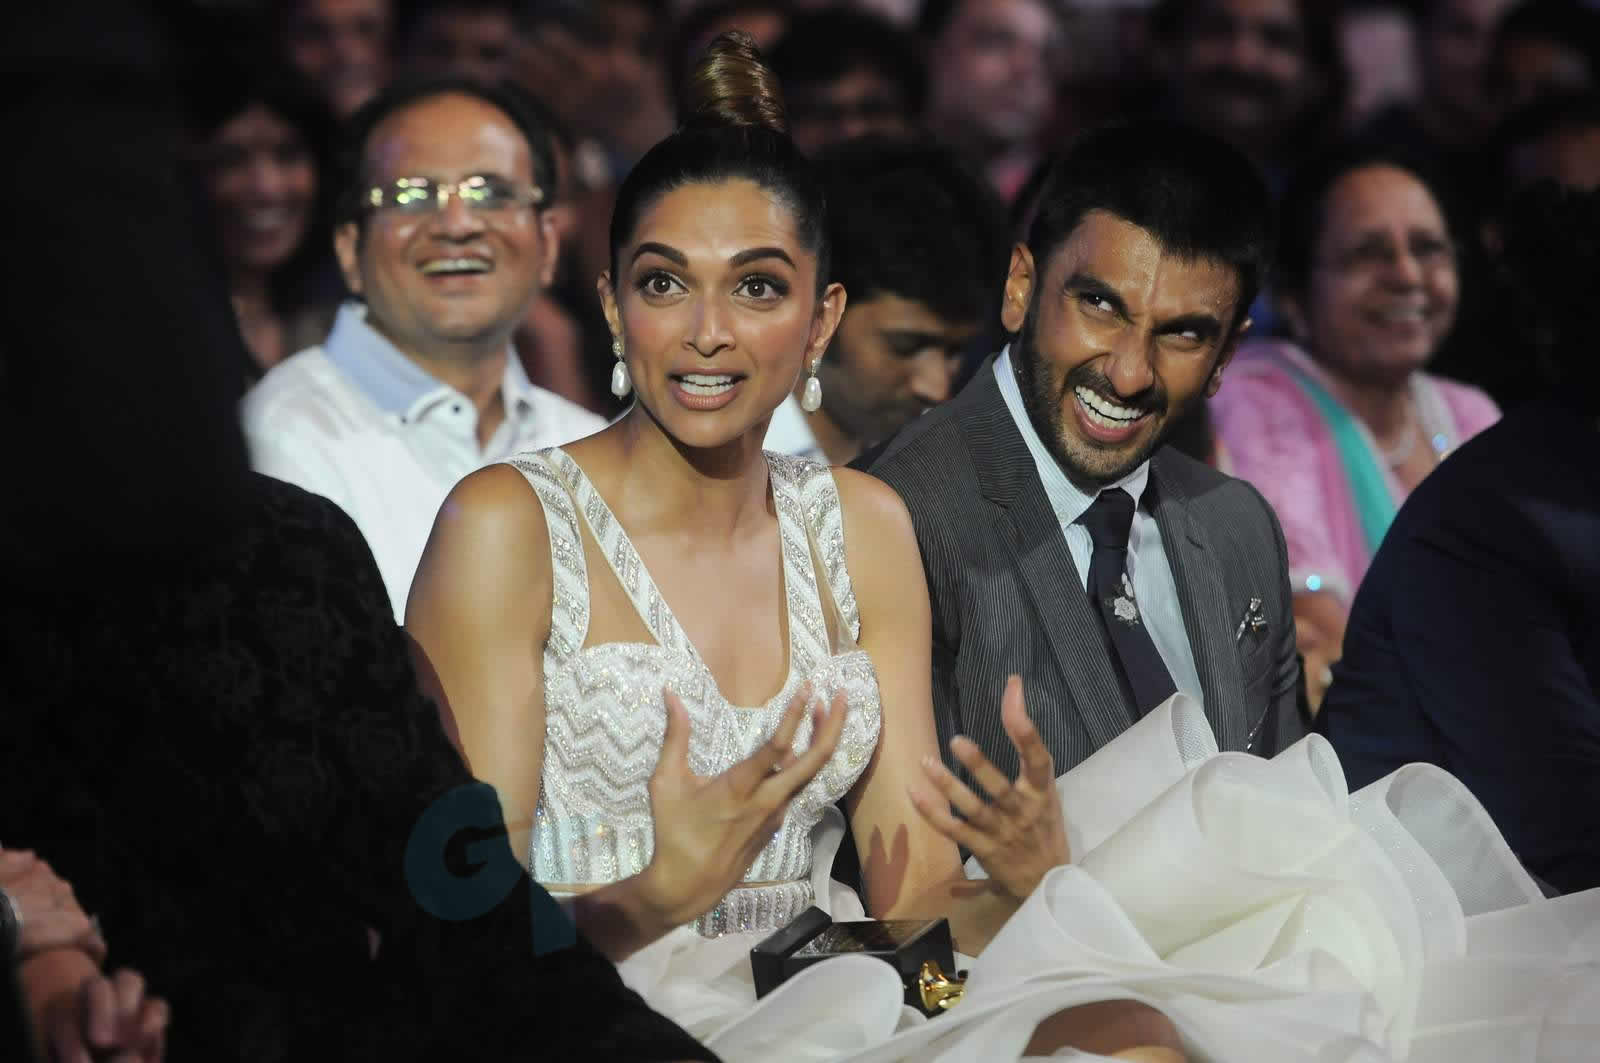 Bajirao Mastani for Best Special Effects